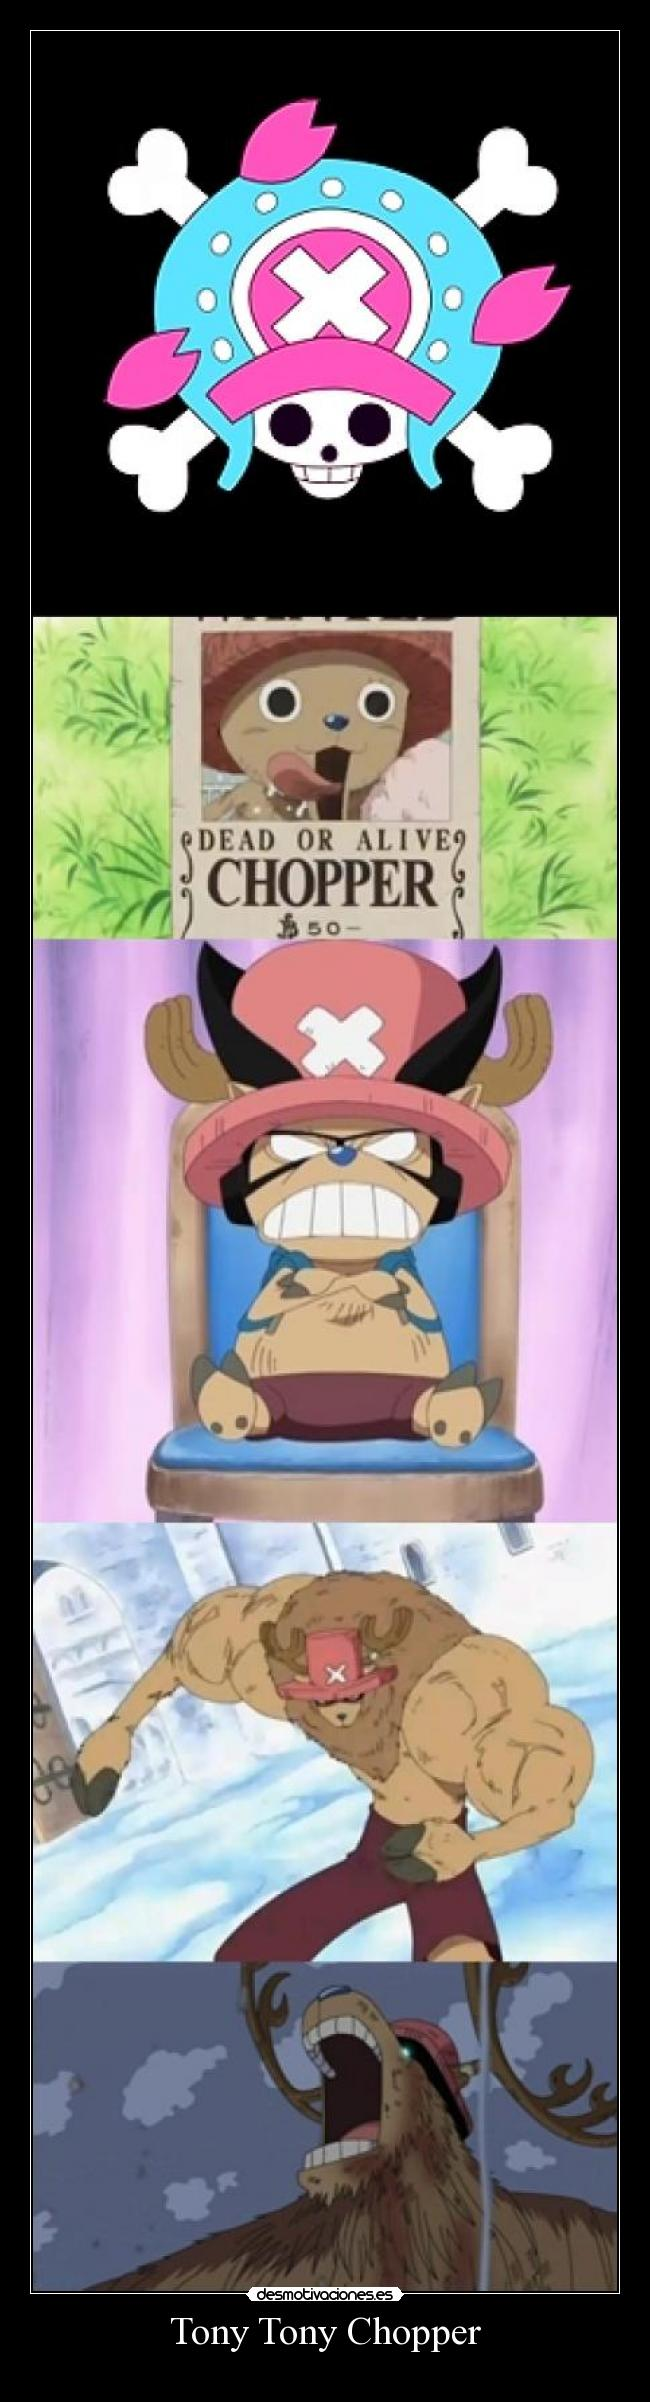 Tony Tony Chopper -